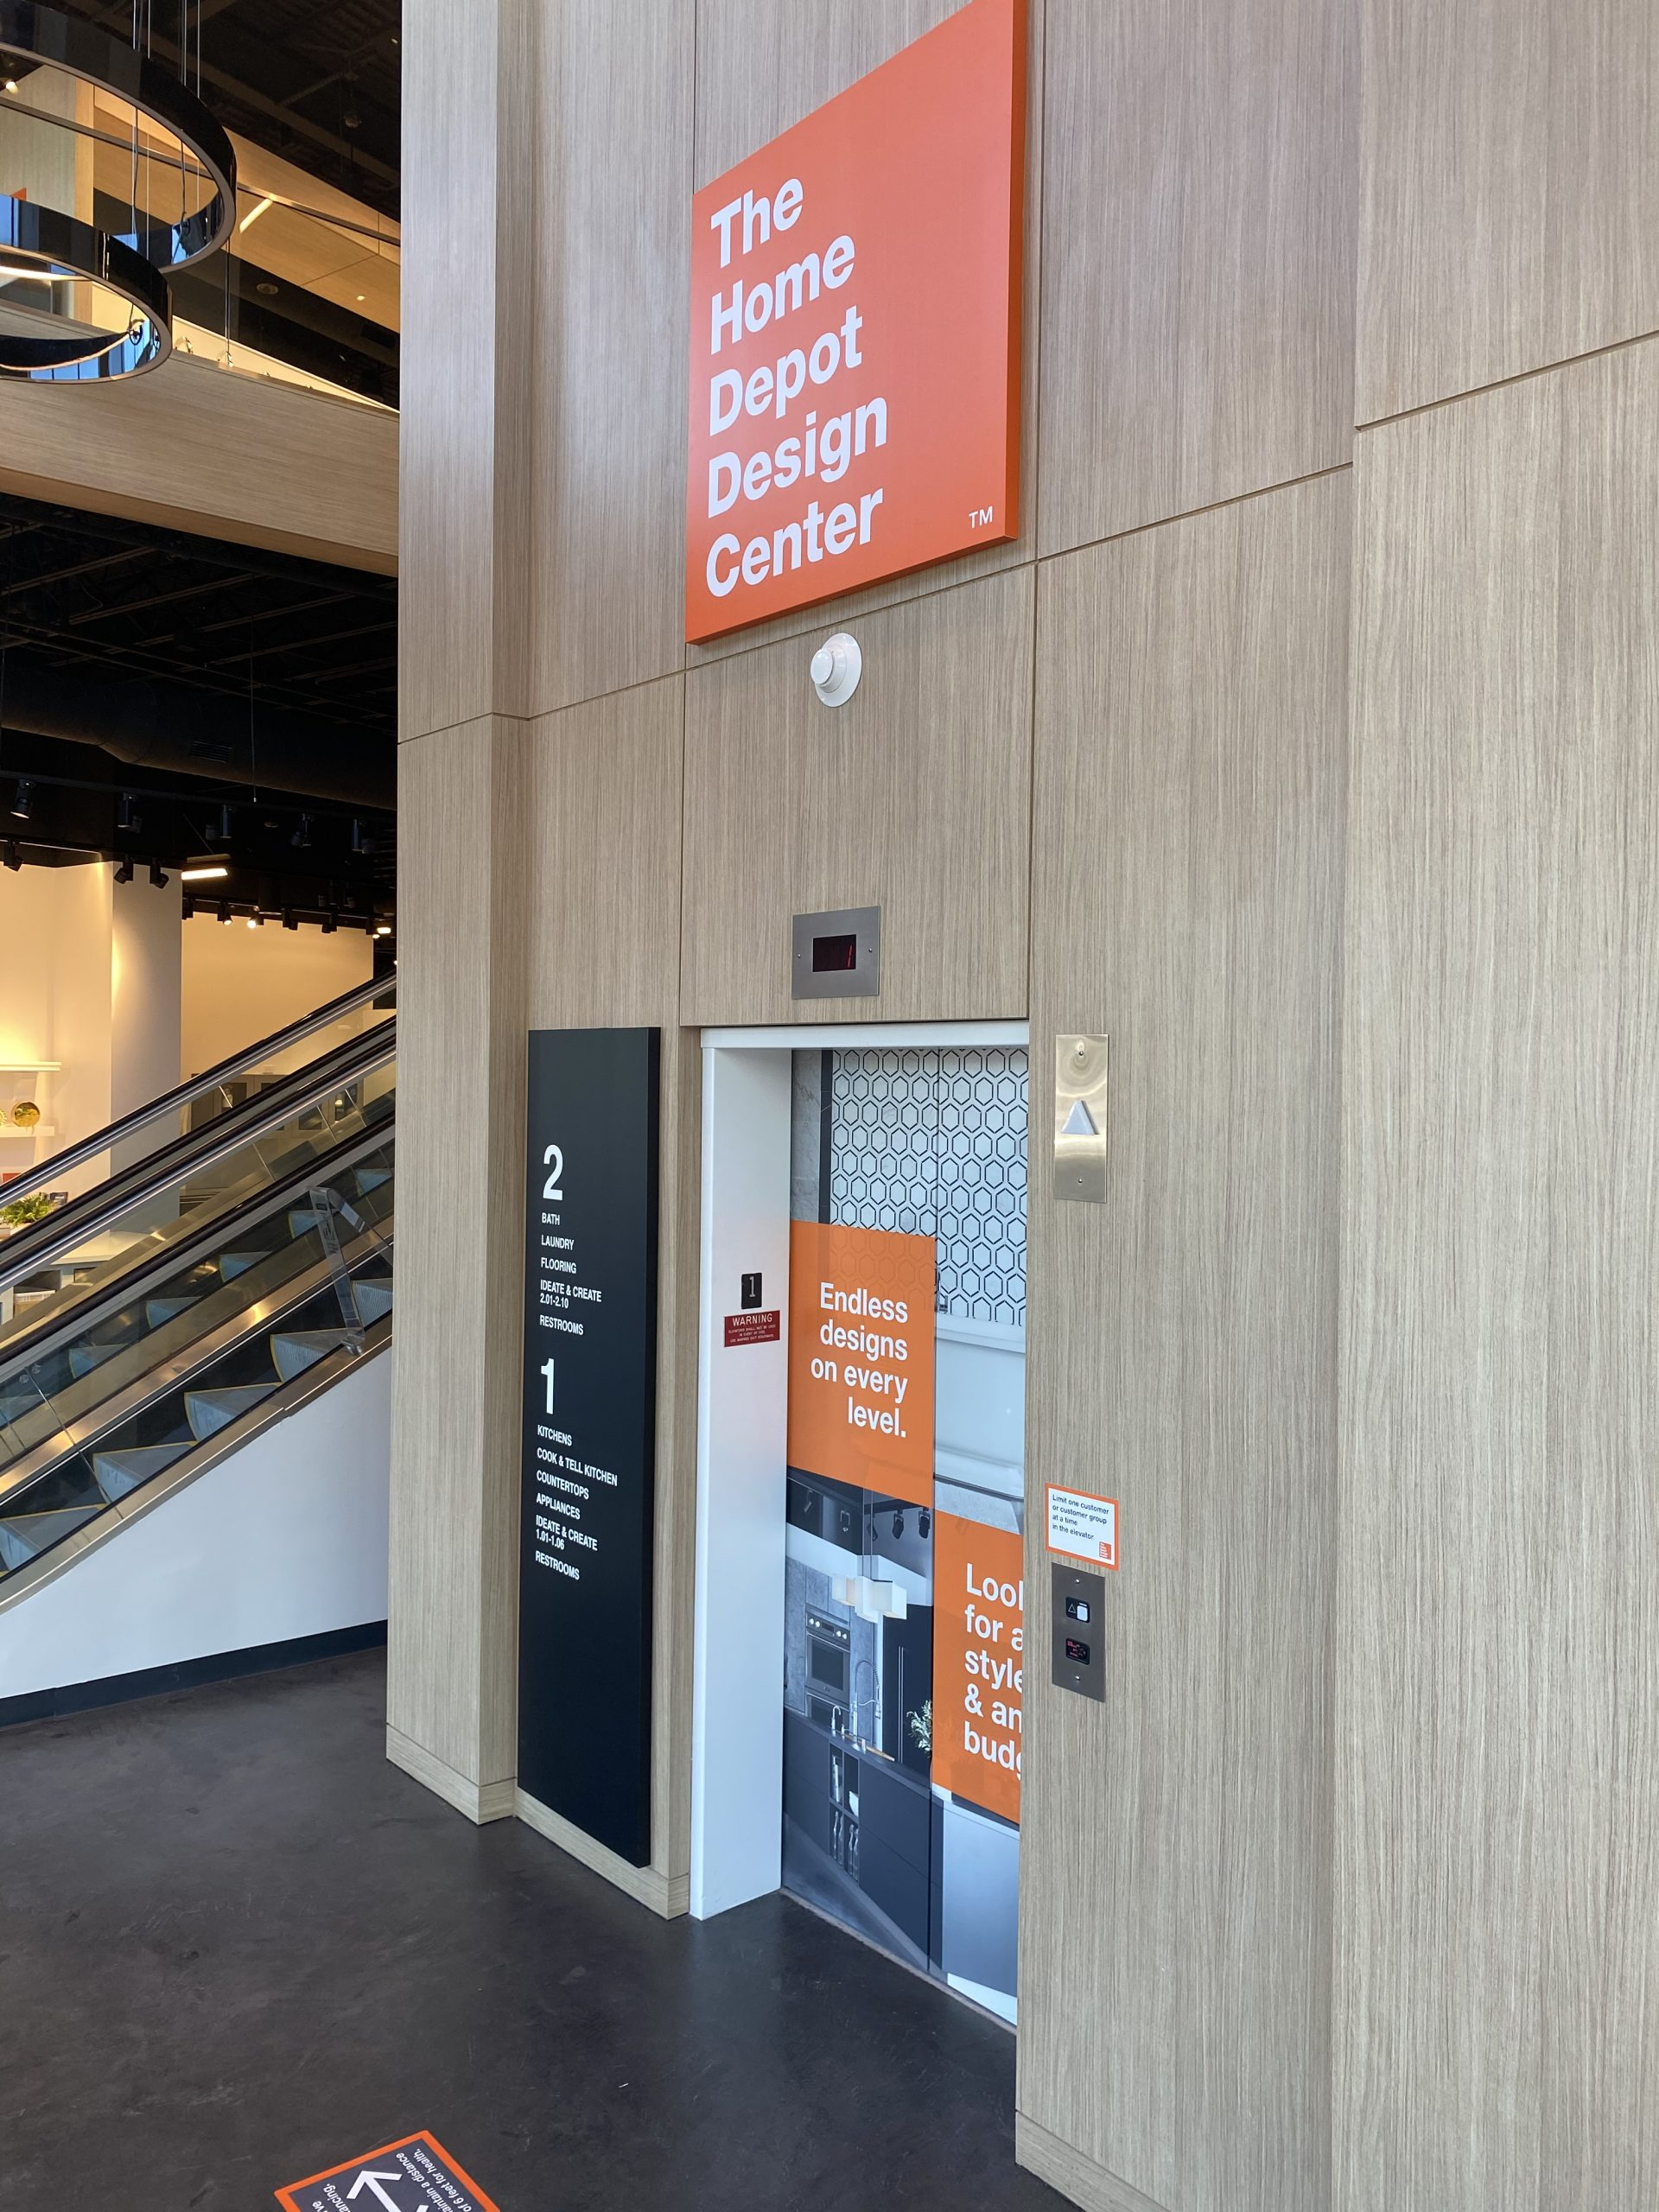 Home Depot Design Center Set To Open Tomorrow 9 7 20 In Montrose Crossing The Moco Show